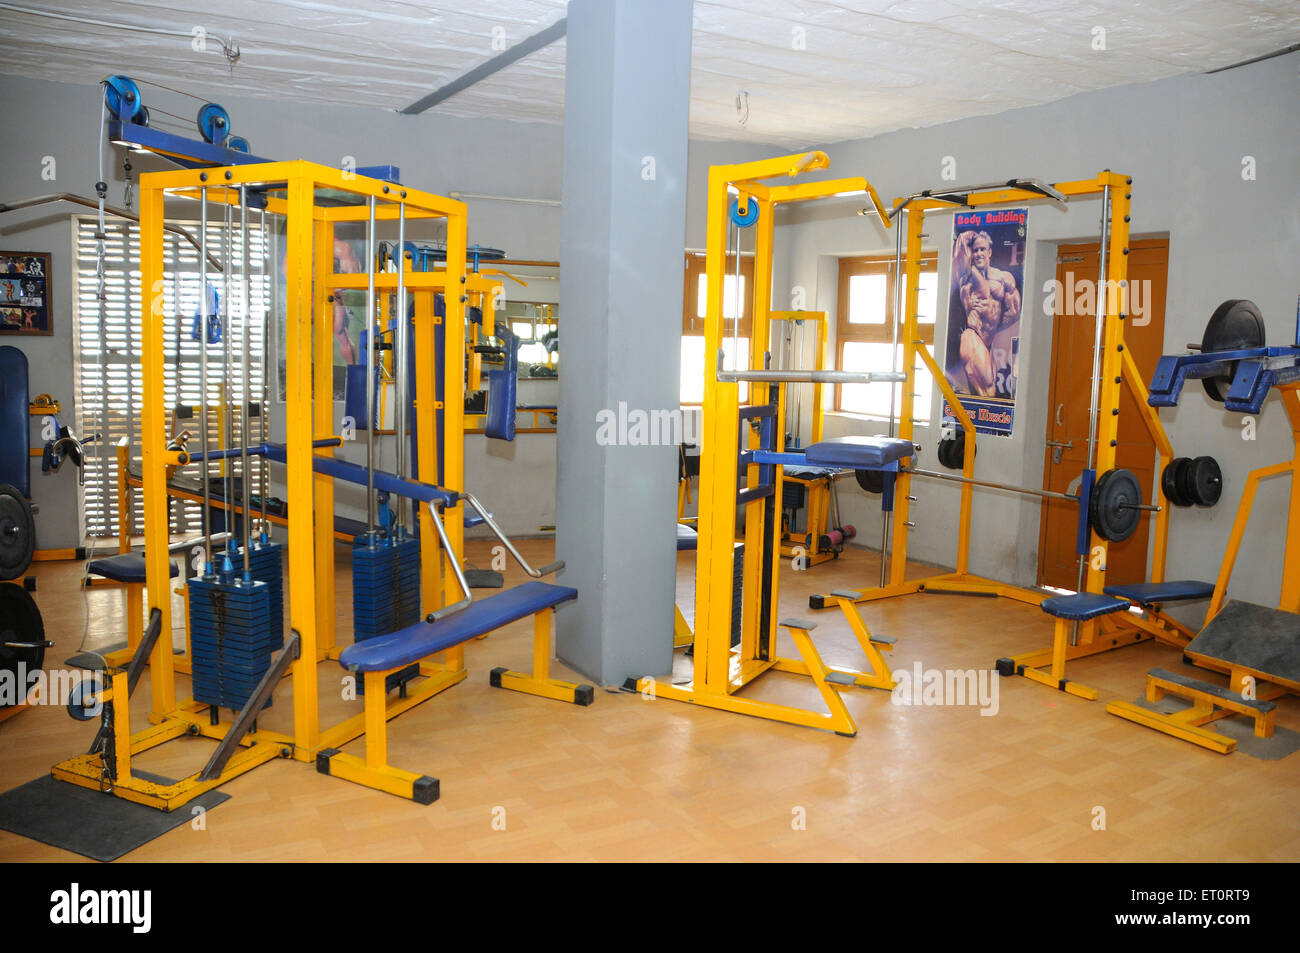 Equipment of gymnasium ; India - Stock Image